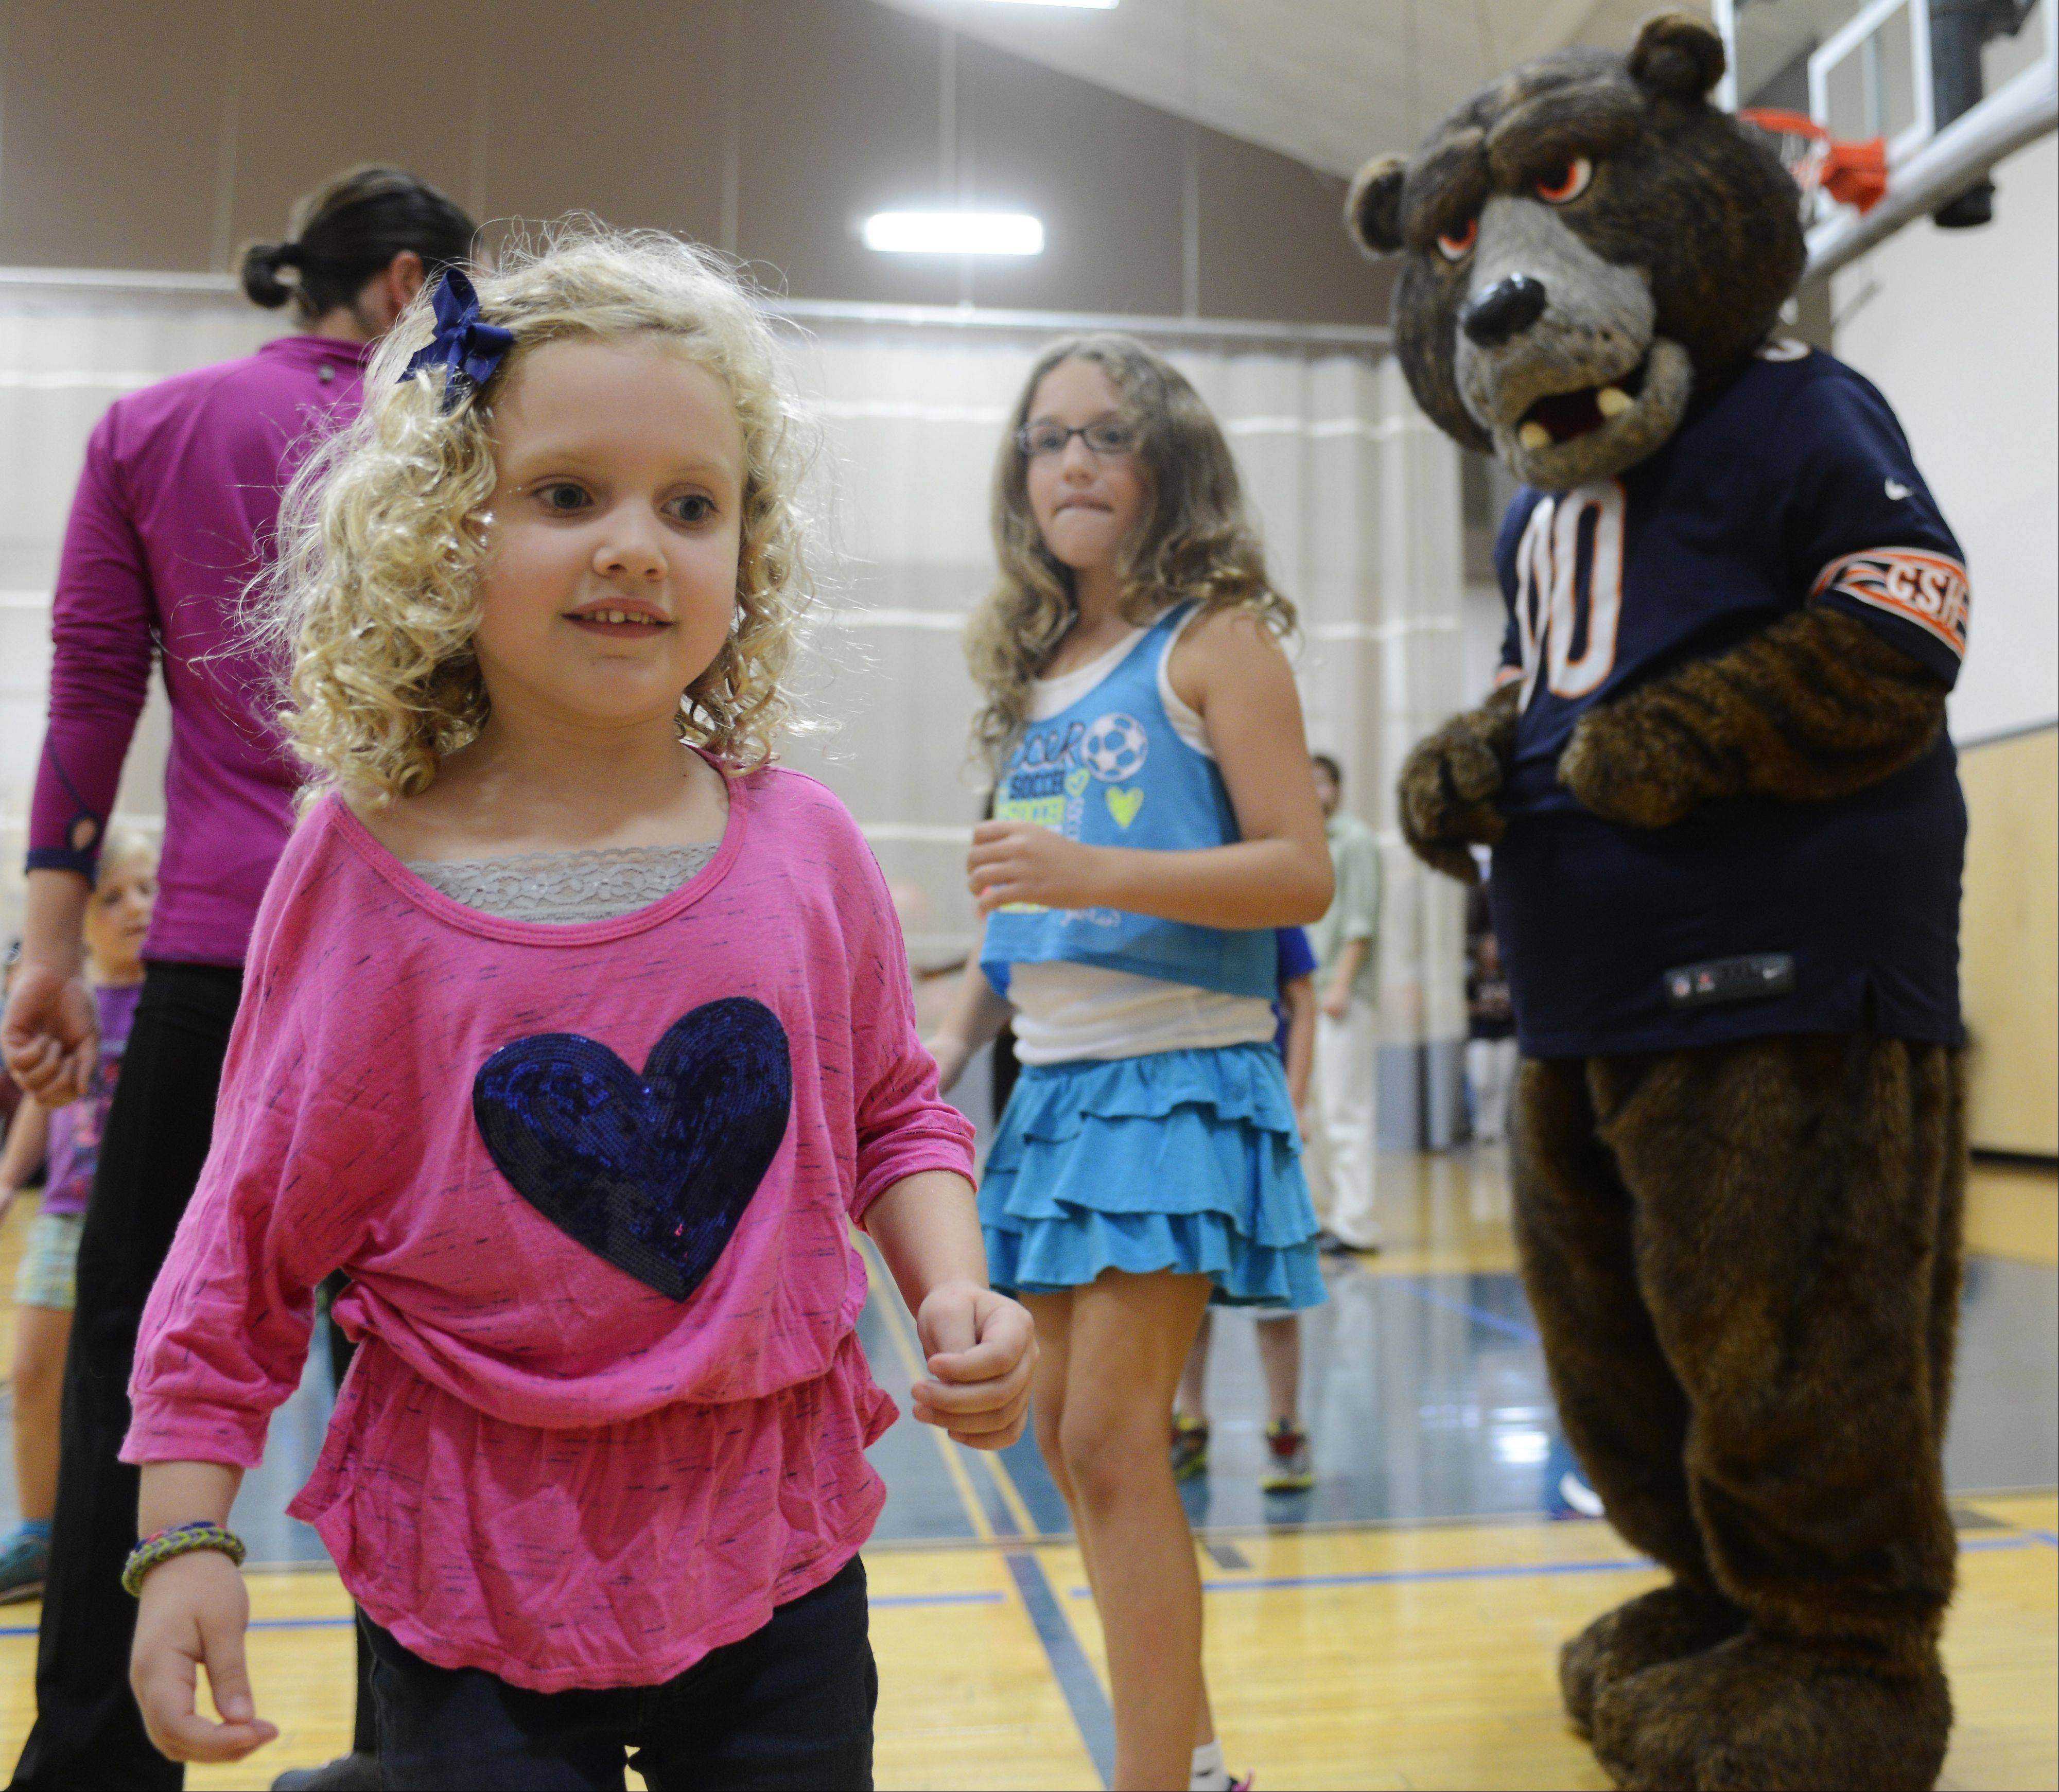 JOE LEWNARD/jlewnard@dailyherald.comSamantha Fetzer, 5, of Arlington Heights, dances with Staley 'Da Bear' during a fitness event Tuesday for children at the Midtown Athletic Club in Palatine. Joining them was Chicago Bears safety Craig Steltz.